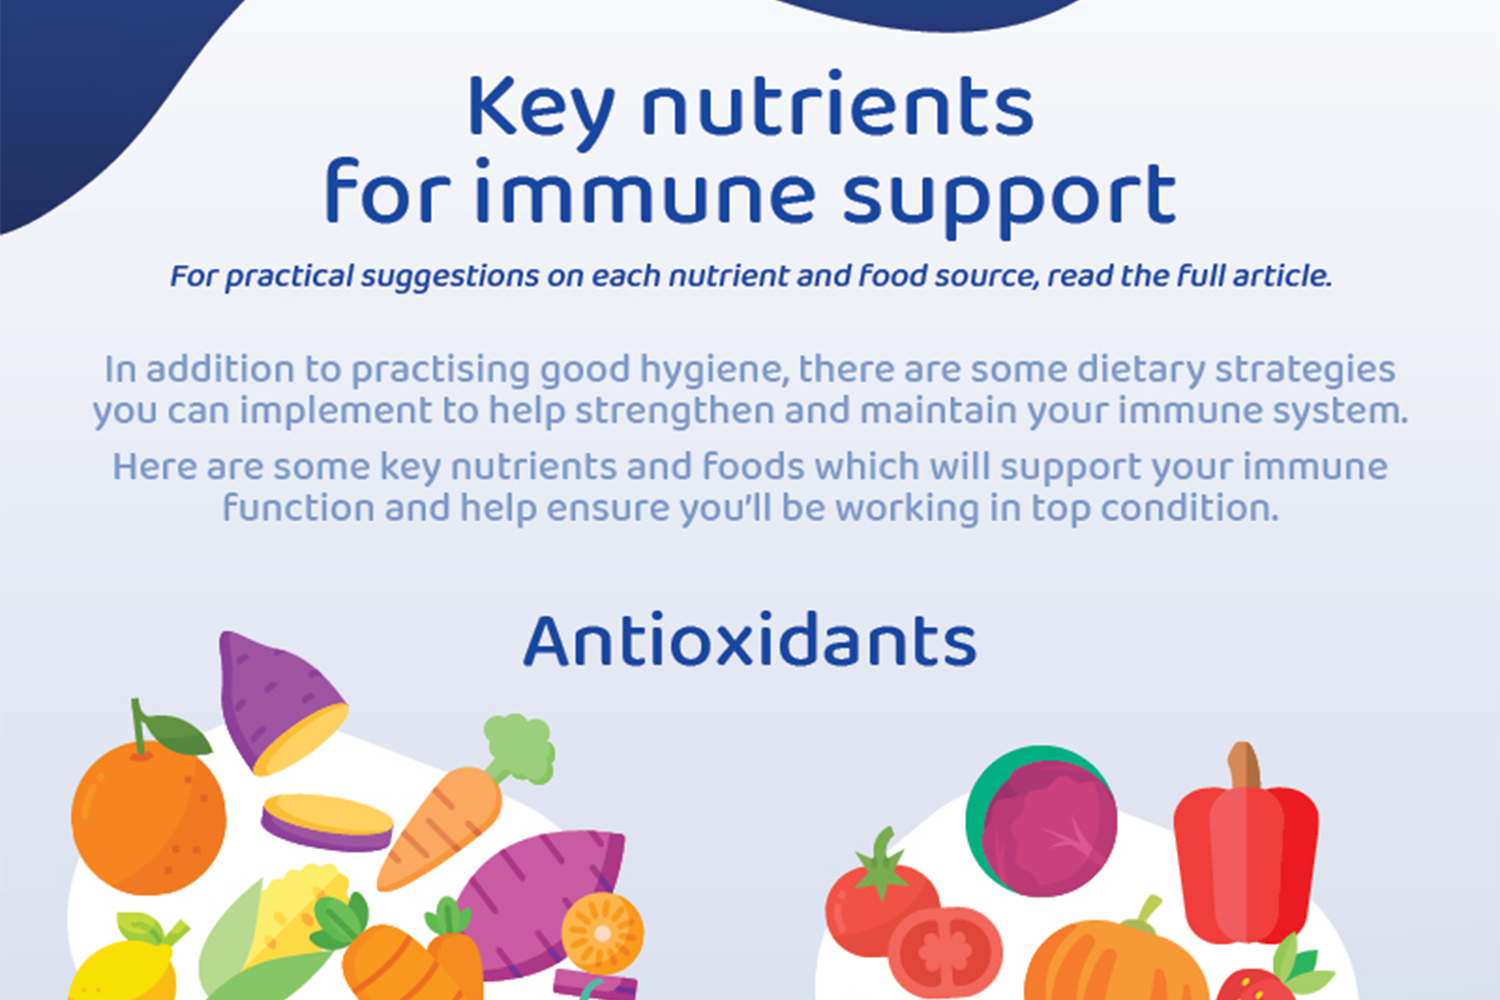 Key nutrients for immune support Image